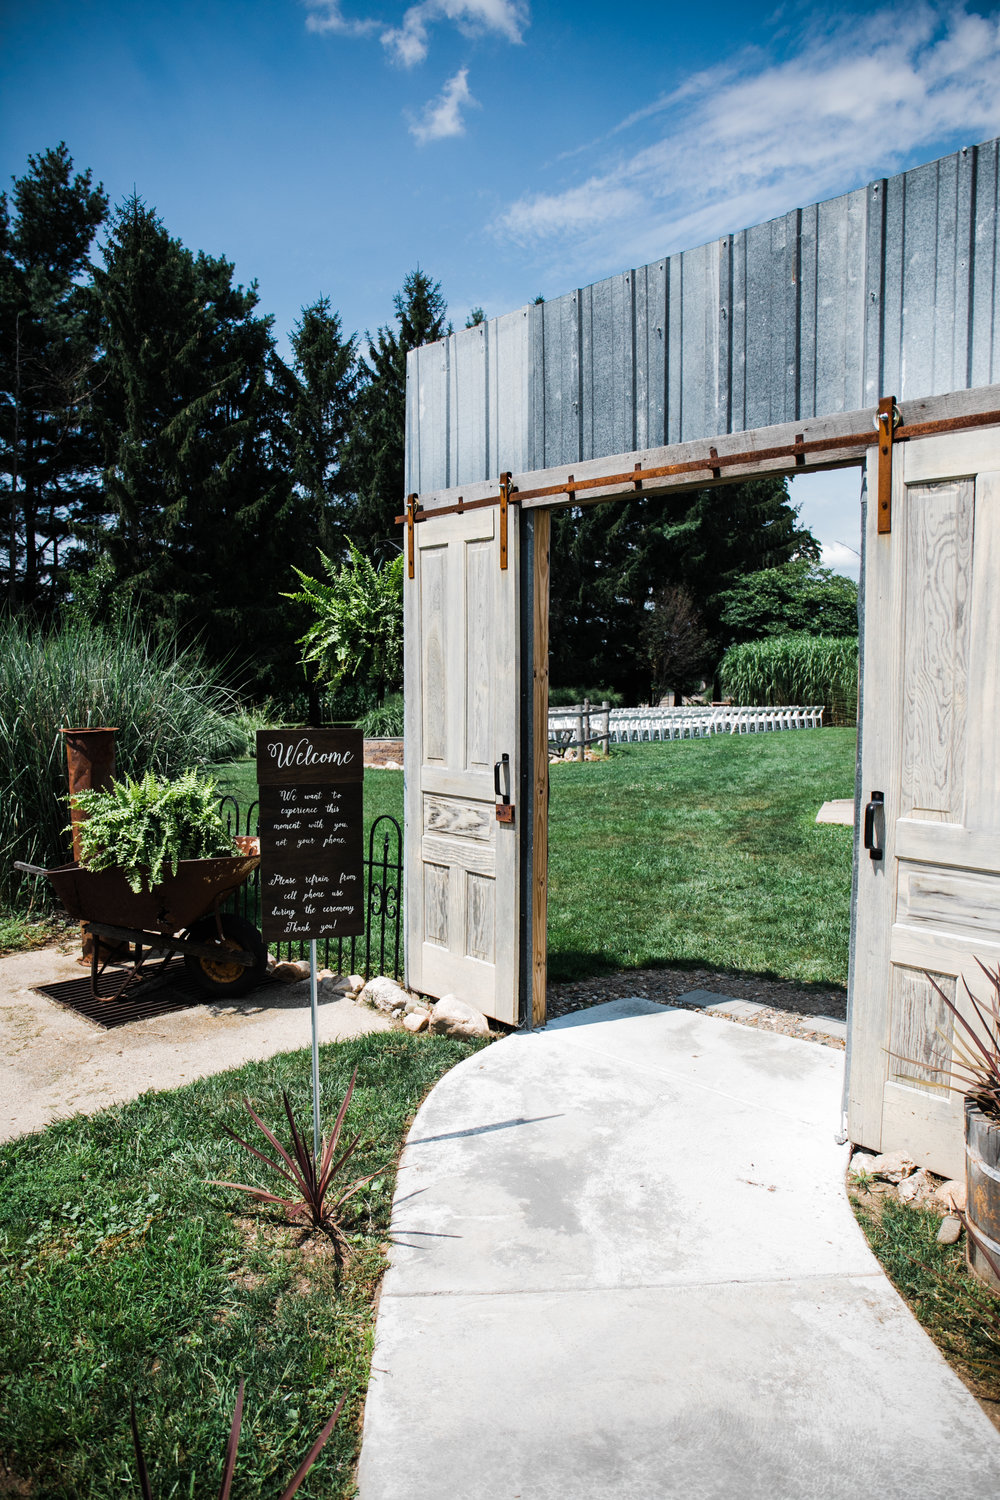 Res Les Farms Wedding Venue | East Leroy, Michigan | Rustic Wedding Venue